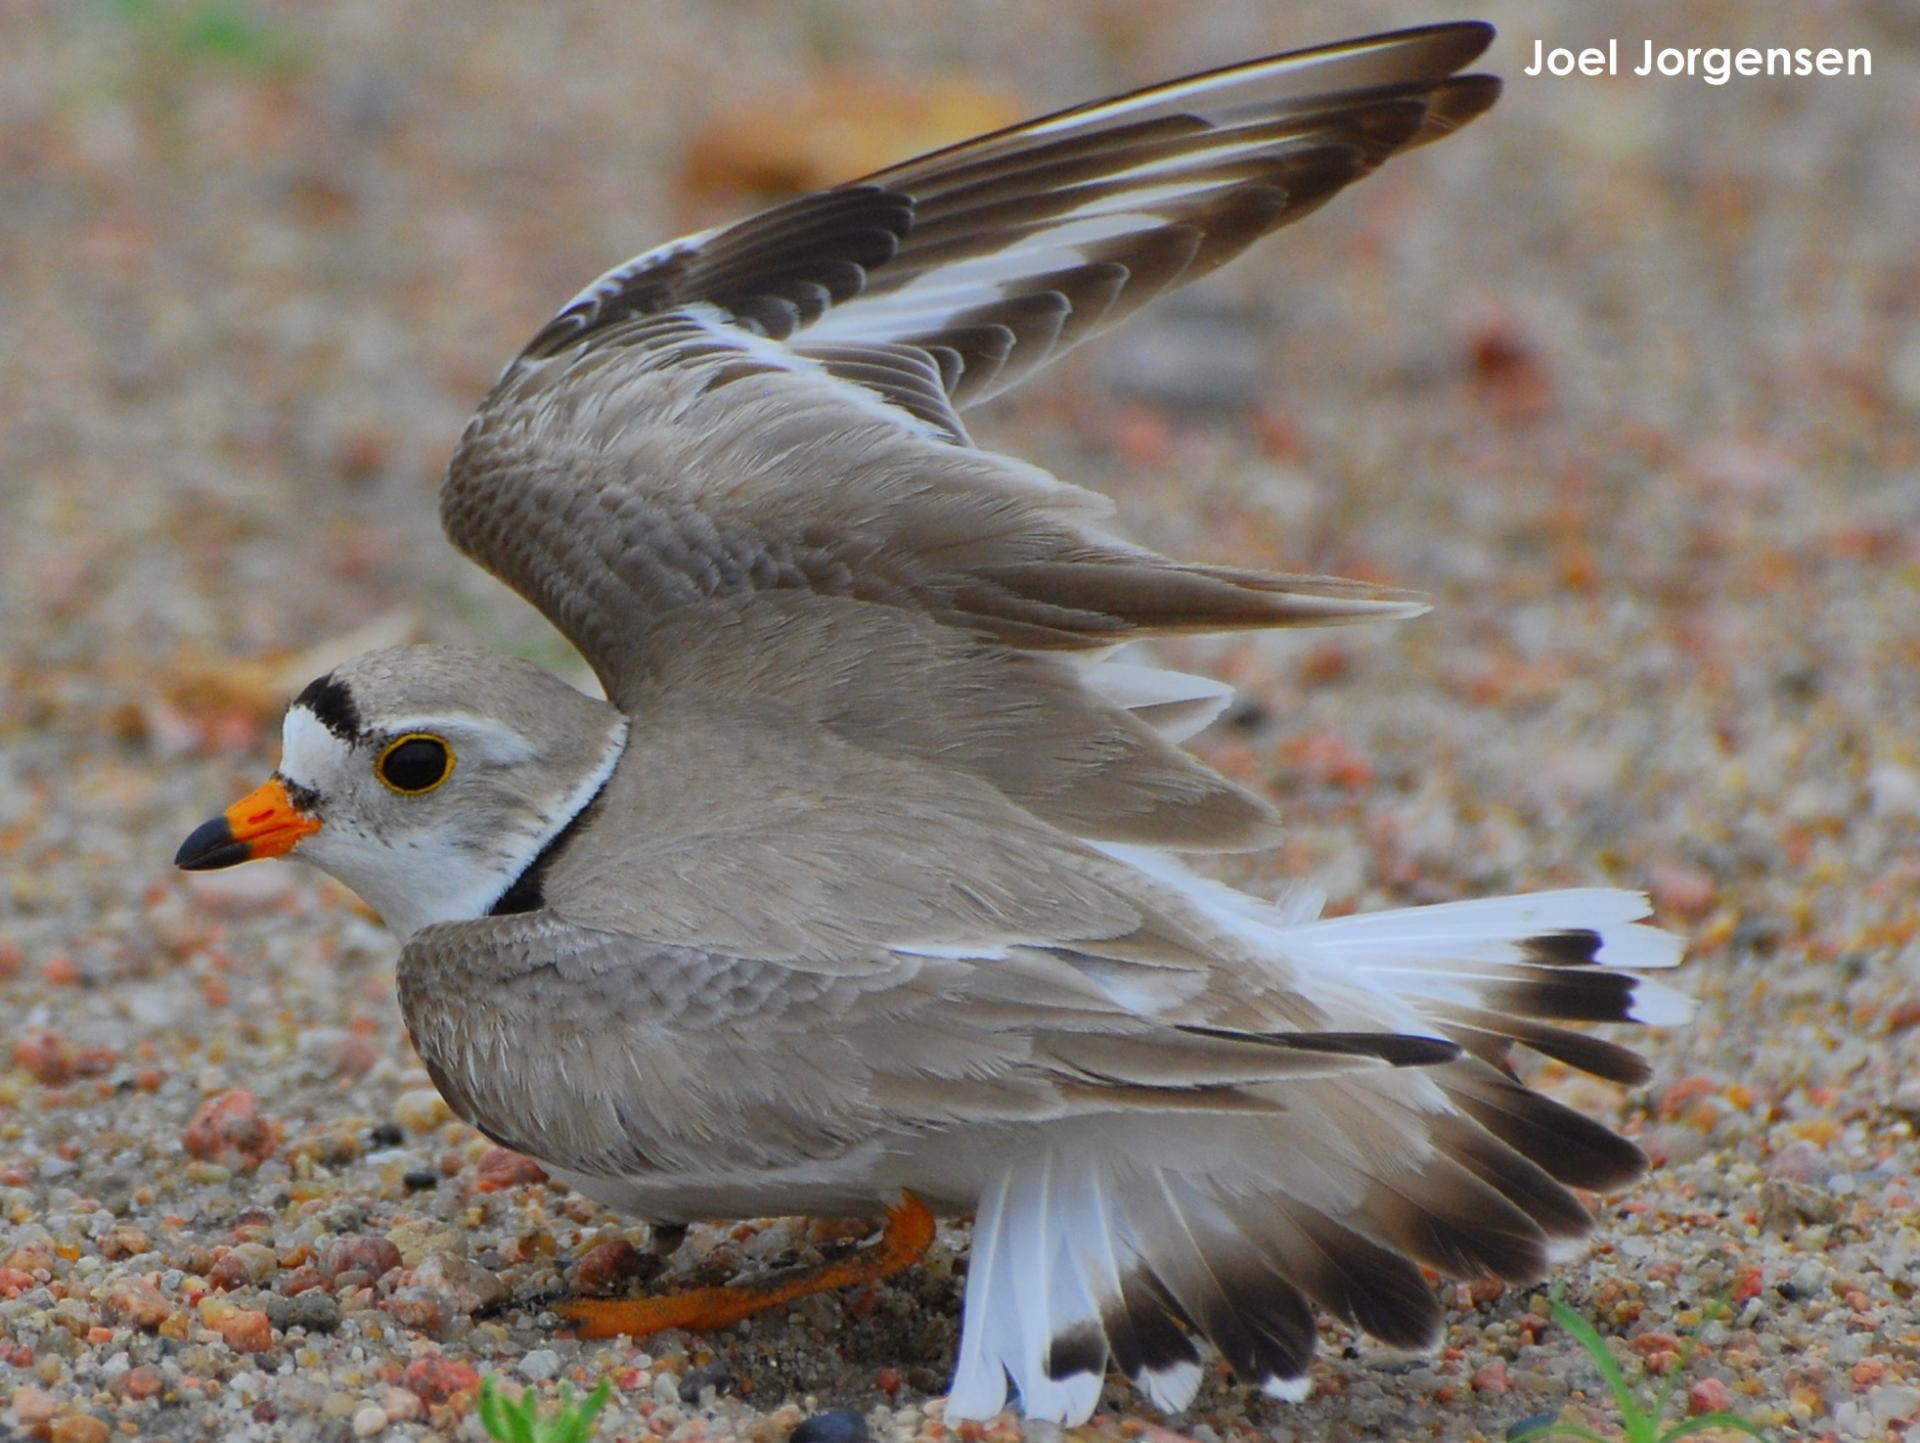 Adult plover using a broken wing display